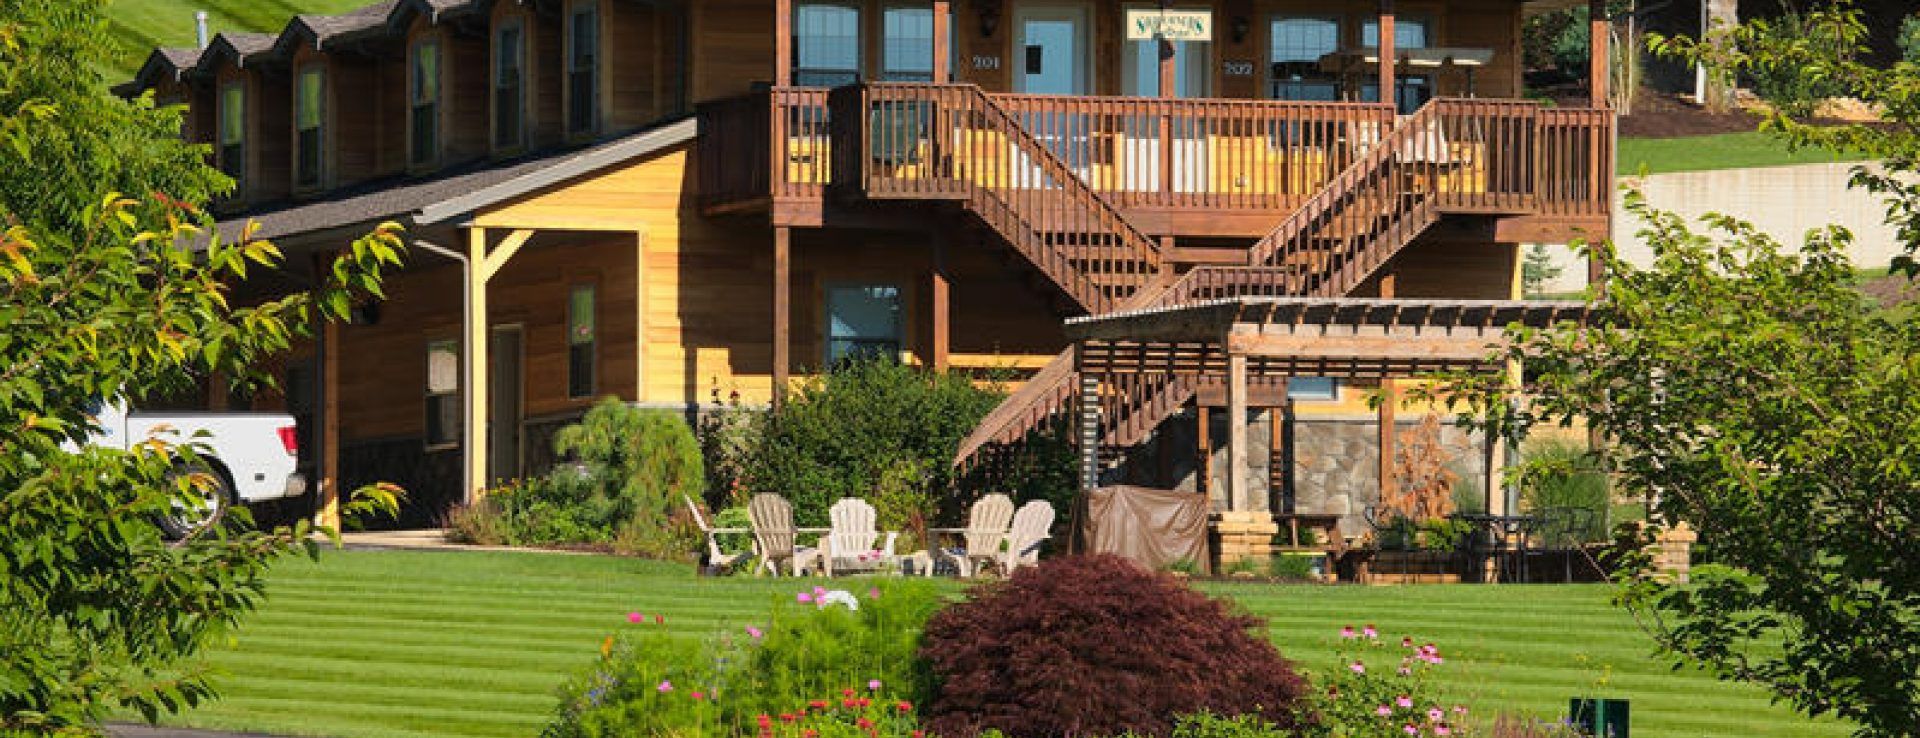 Sojourner S Lodge Amp Log Cabin Suites Ohio S Amish Country